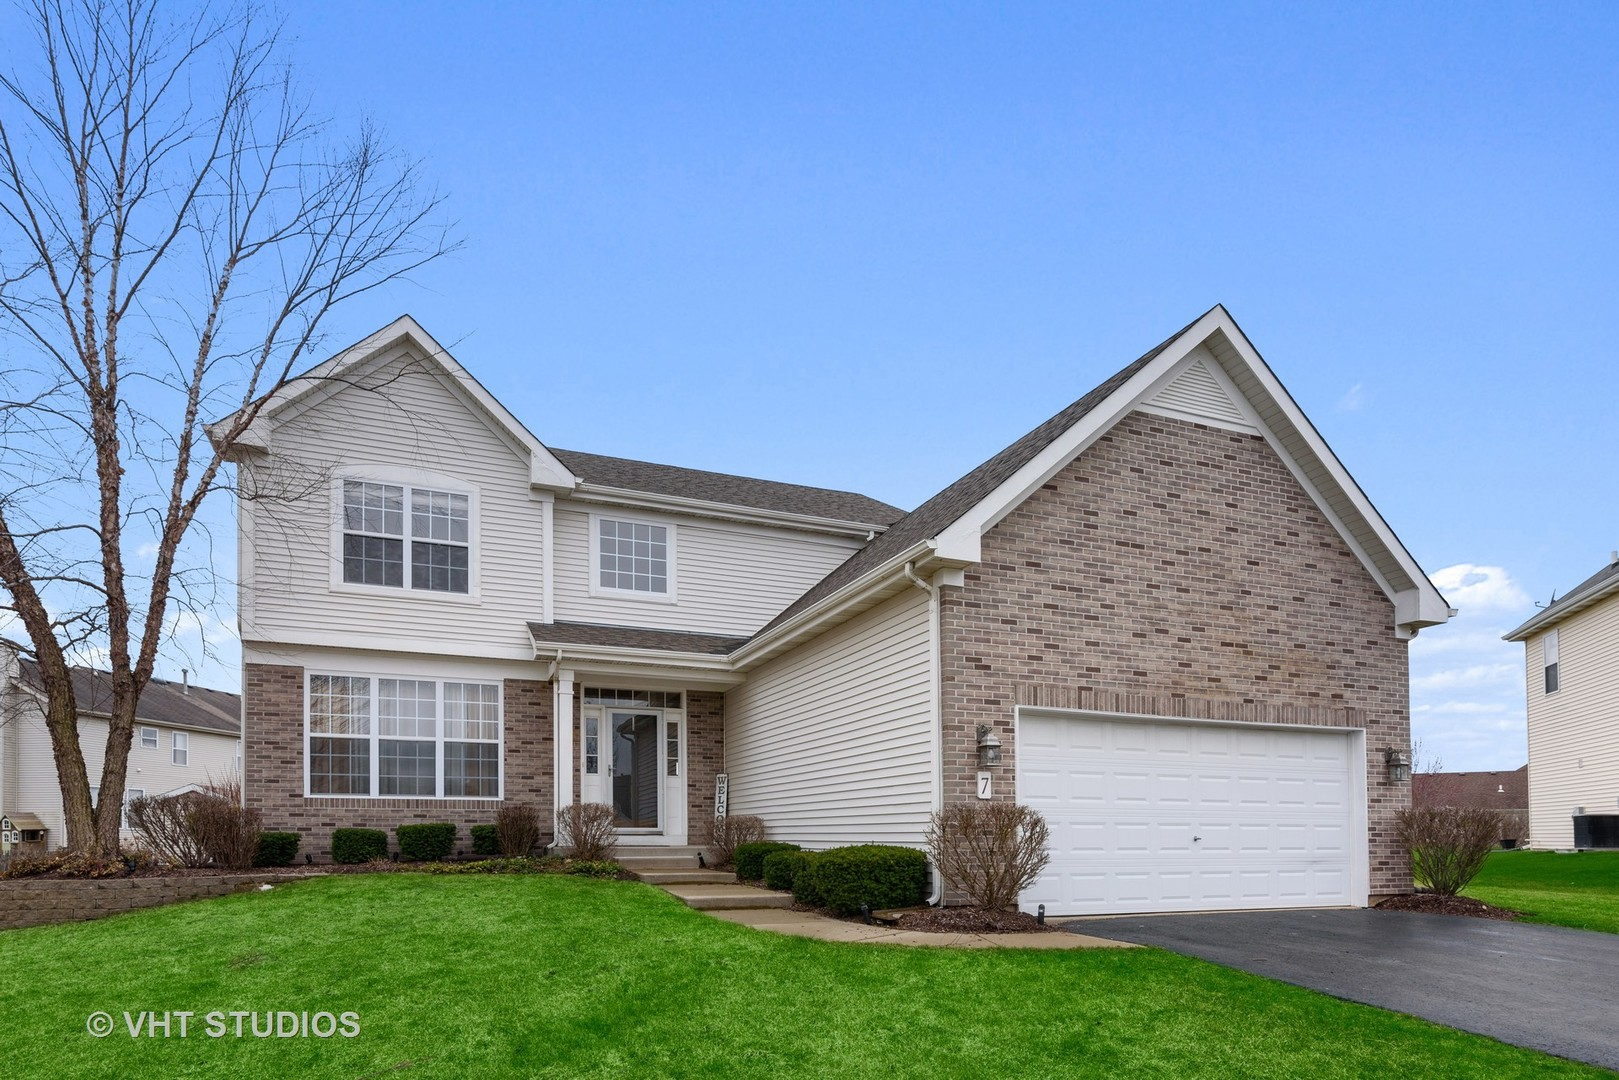 Photo for 7 Lake Plumleigh Court, Algonquin, IL 60102 (MLS # 10675711)